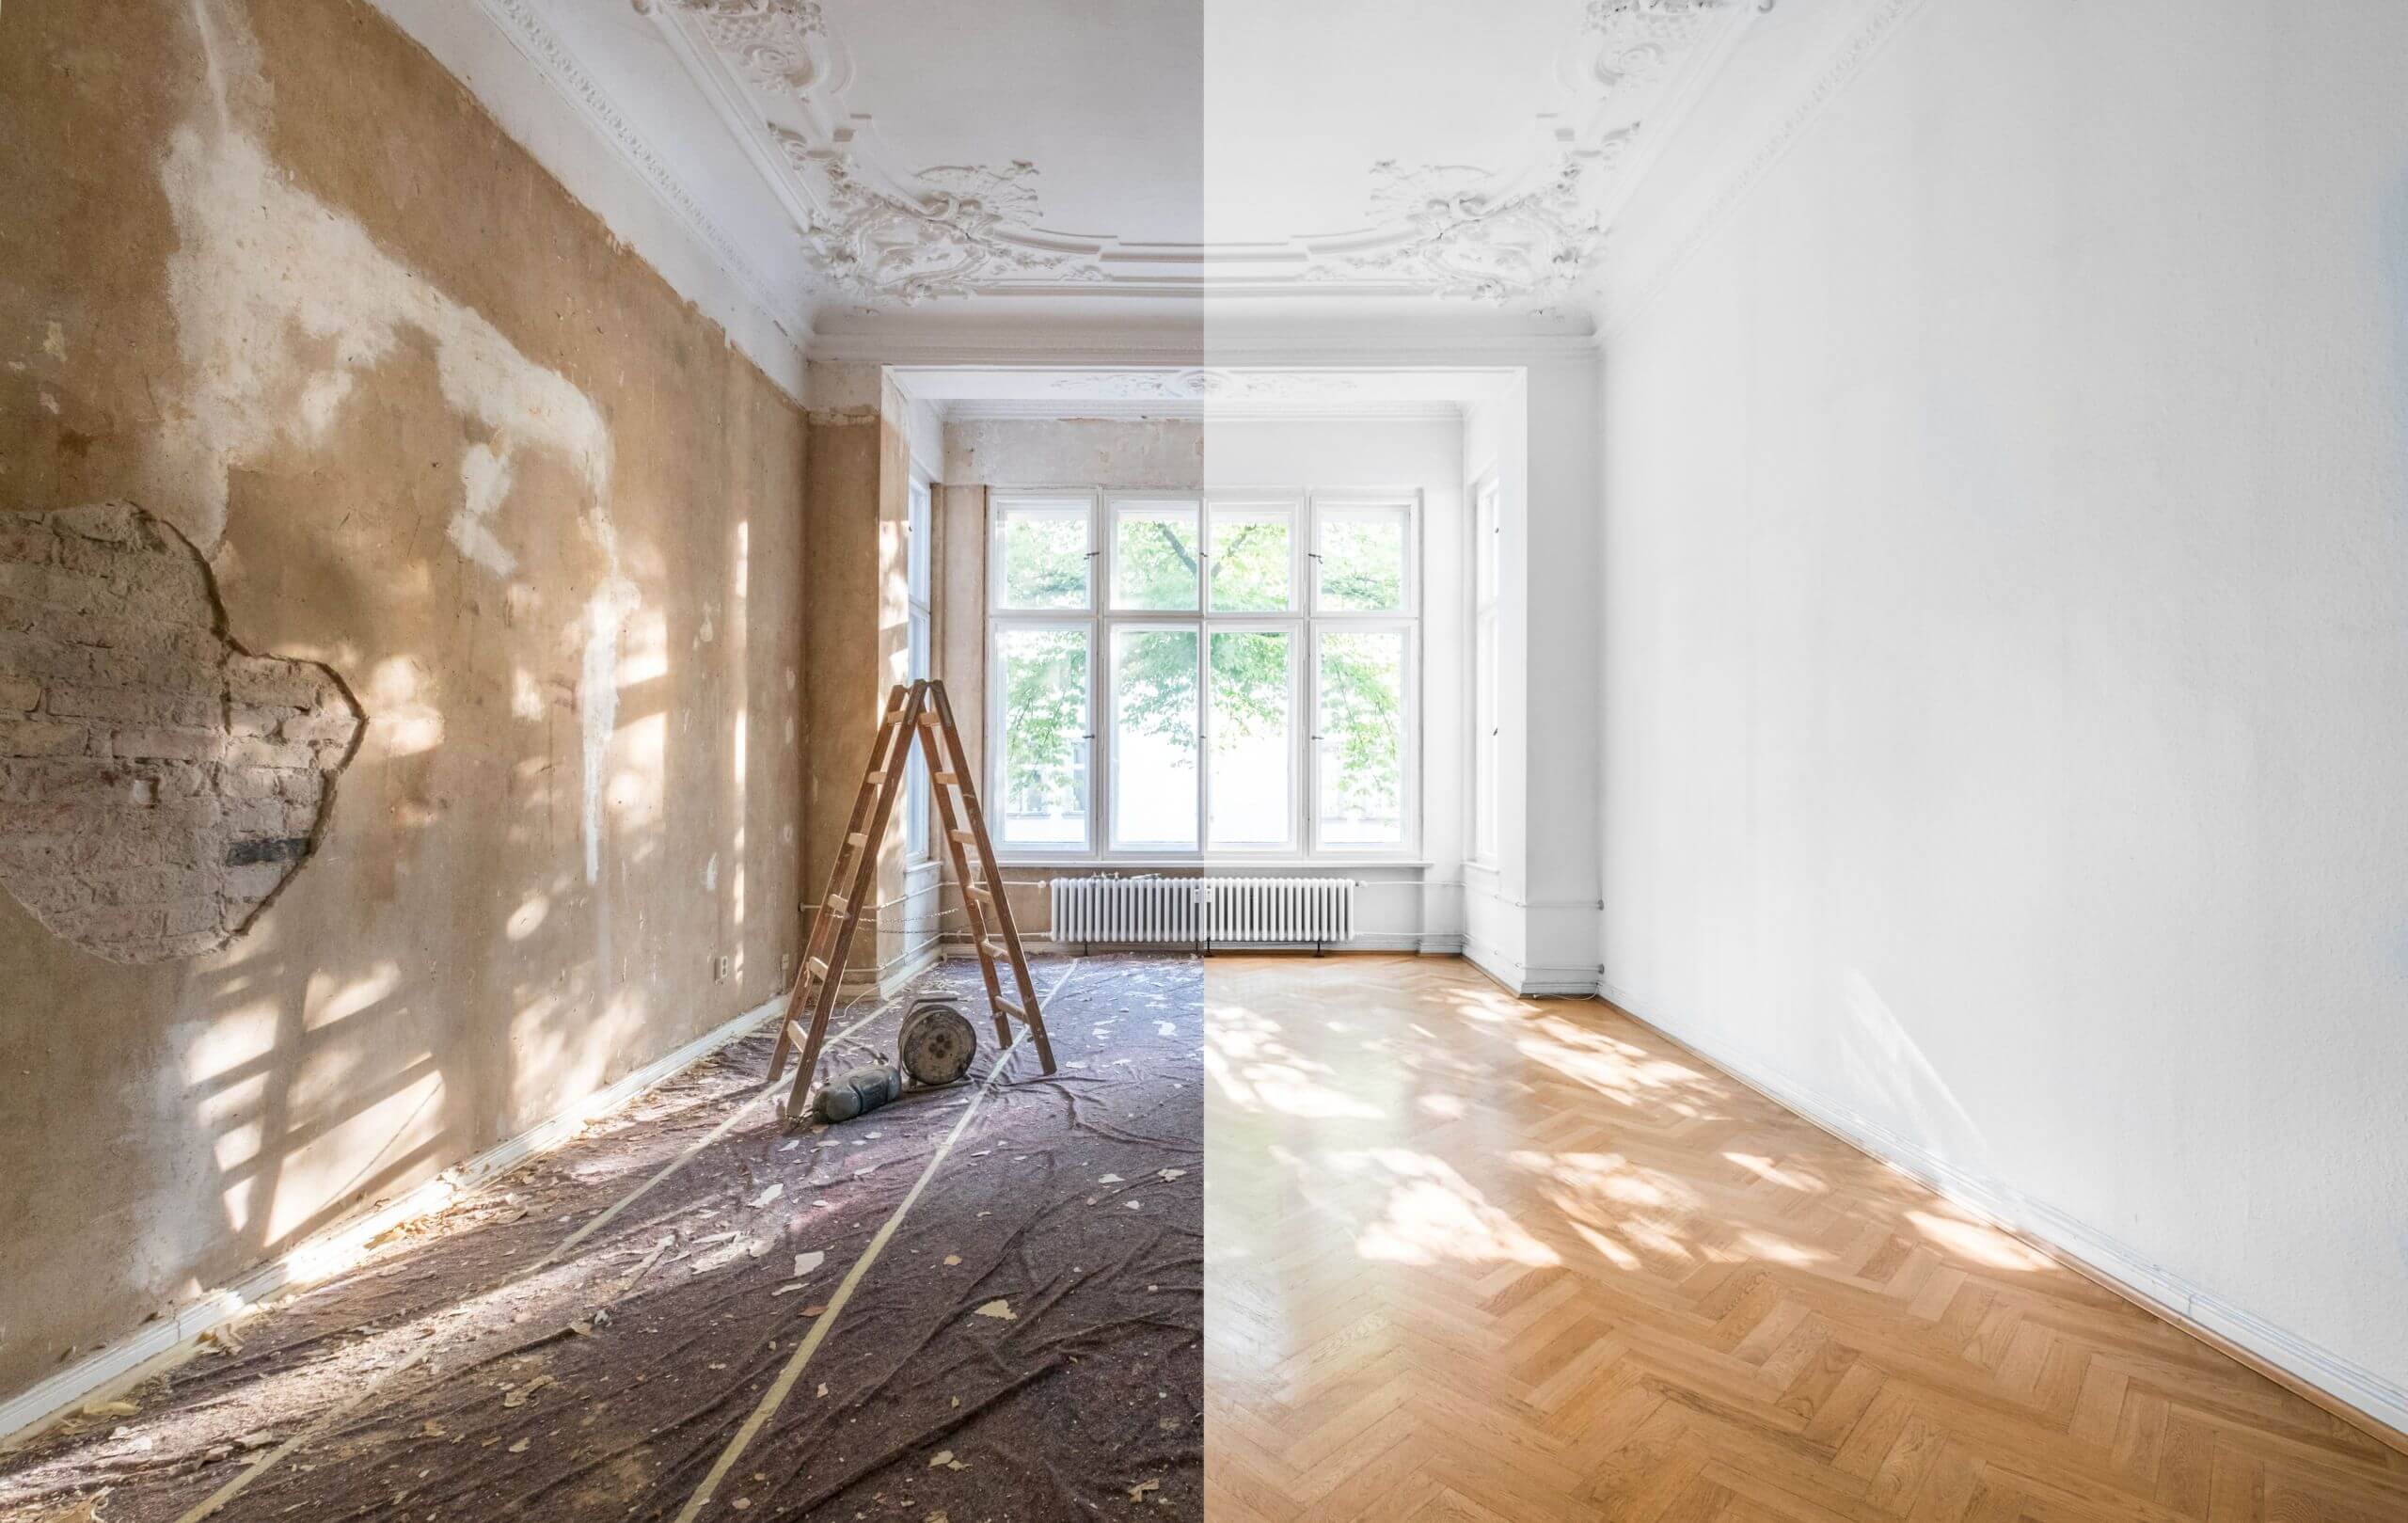 before and after wall painting comparison